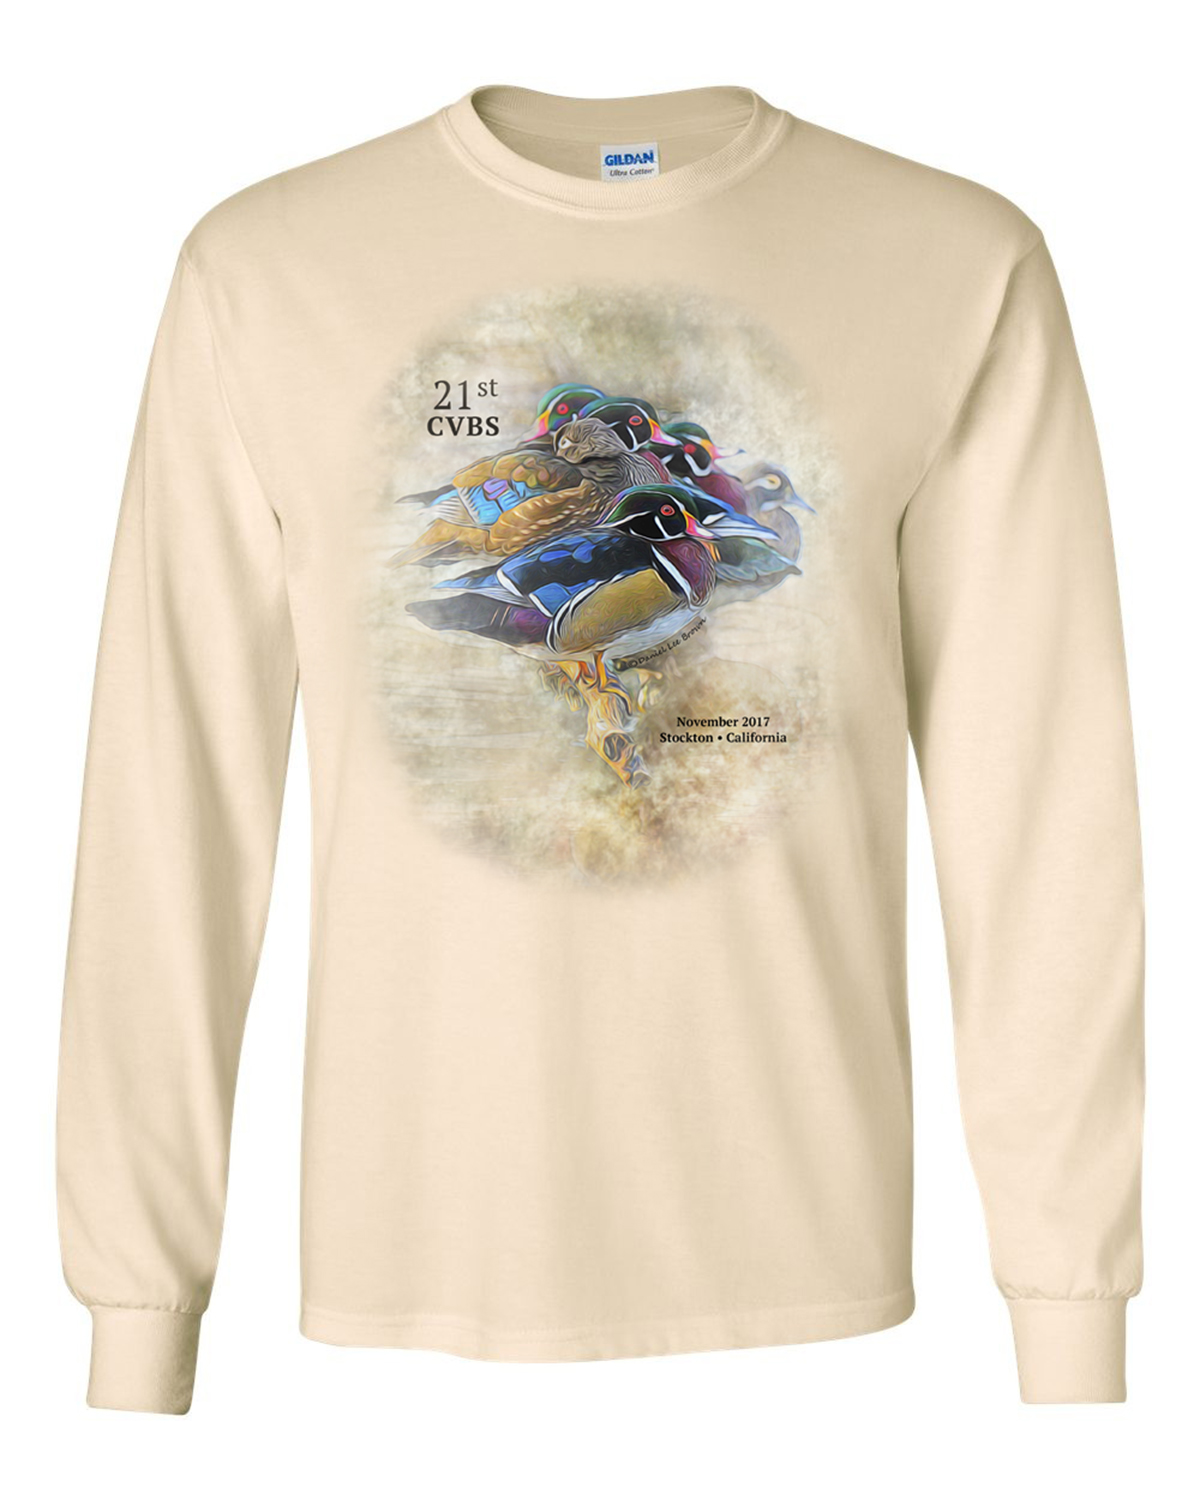 Unisex Long Sleeve T-Shirt (color: Natural)